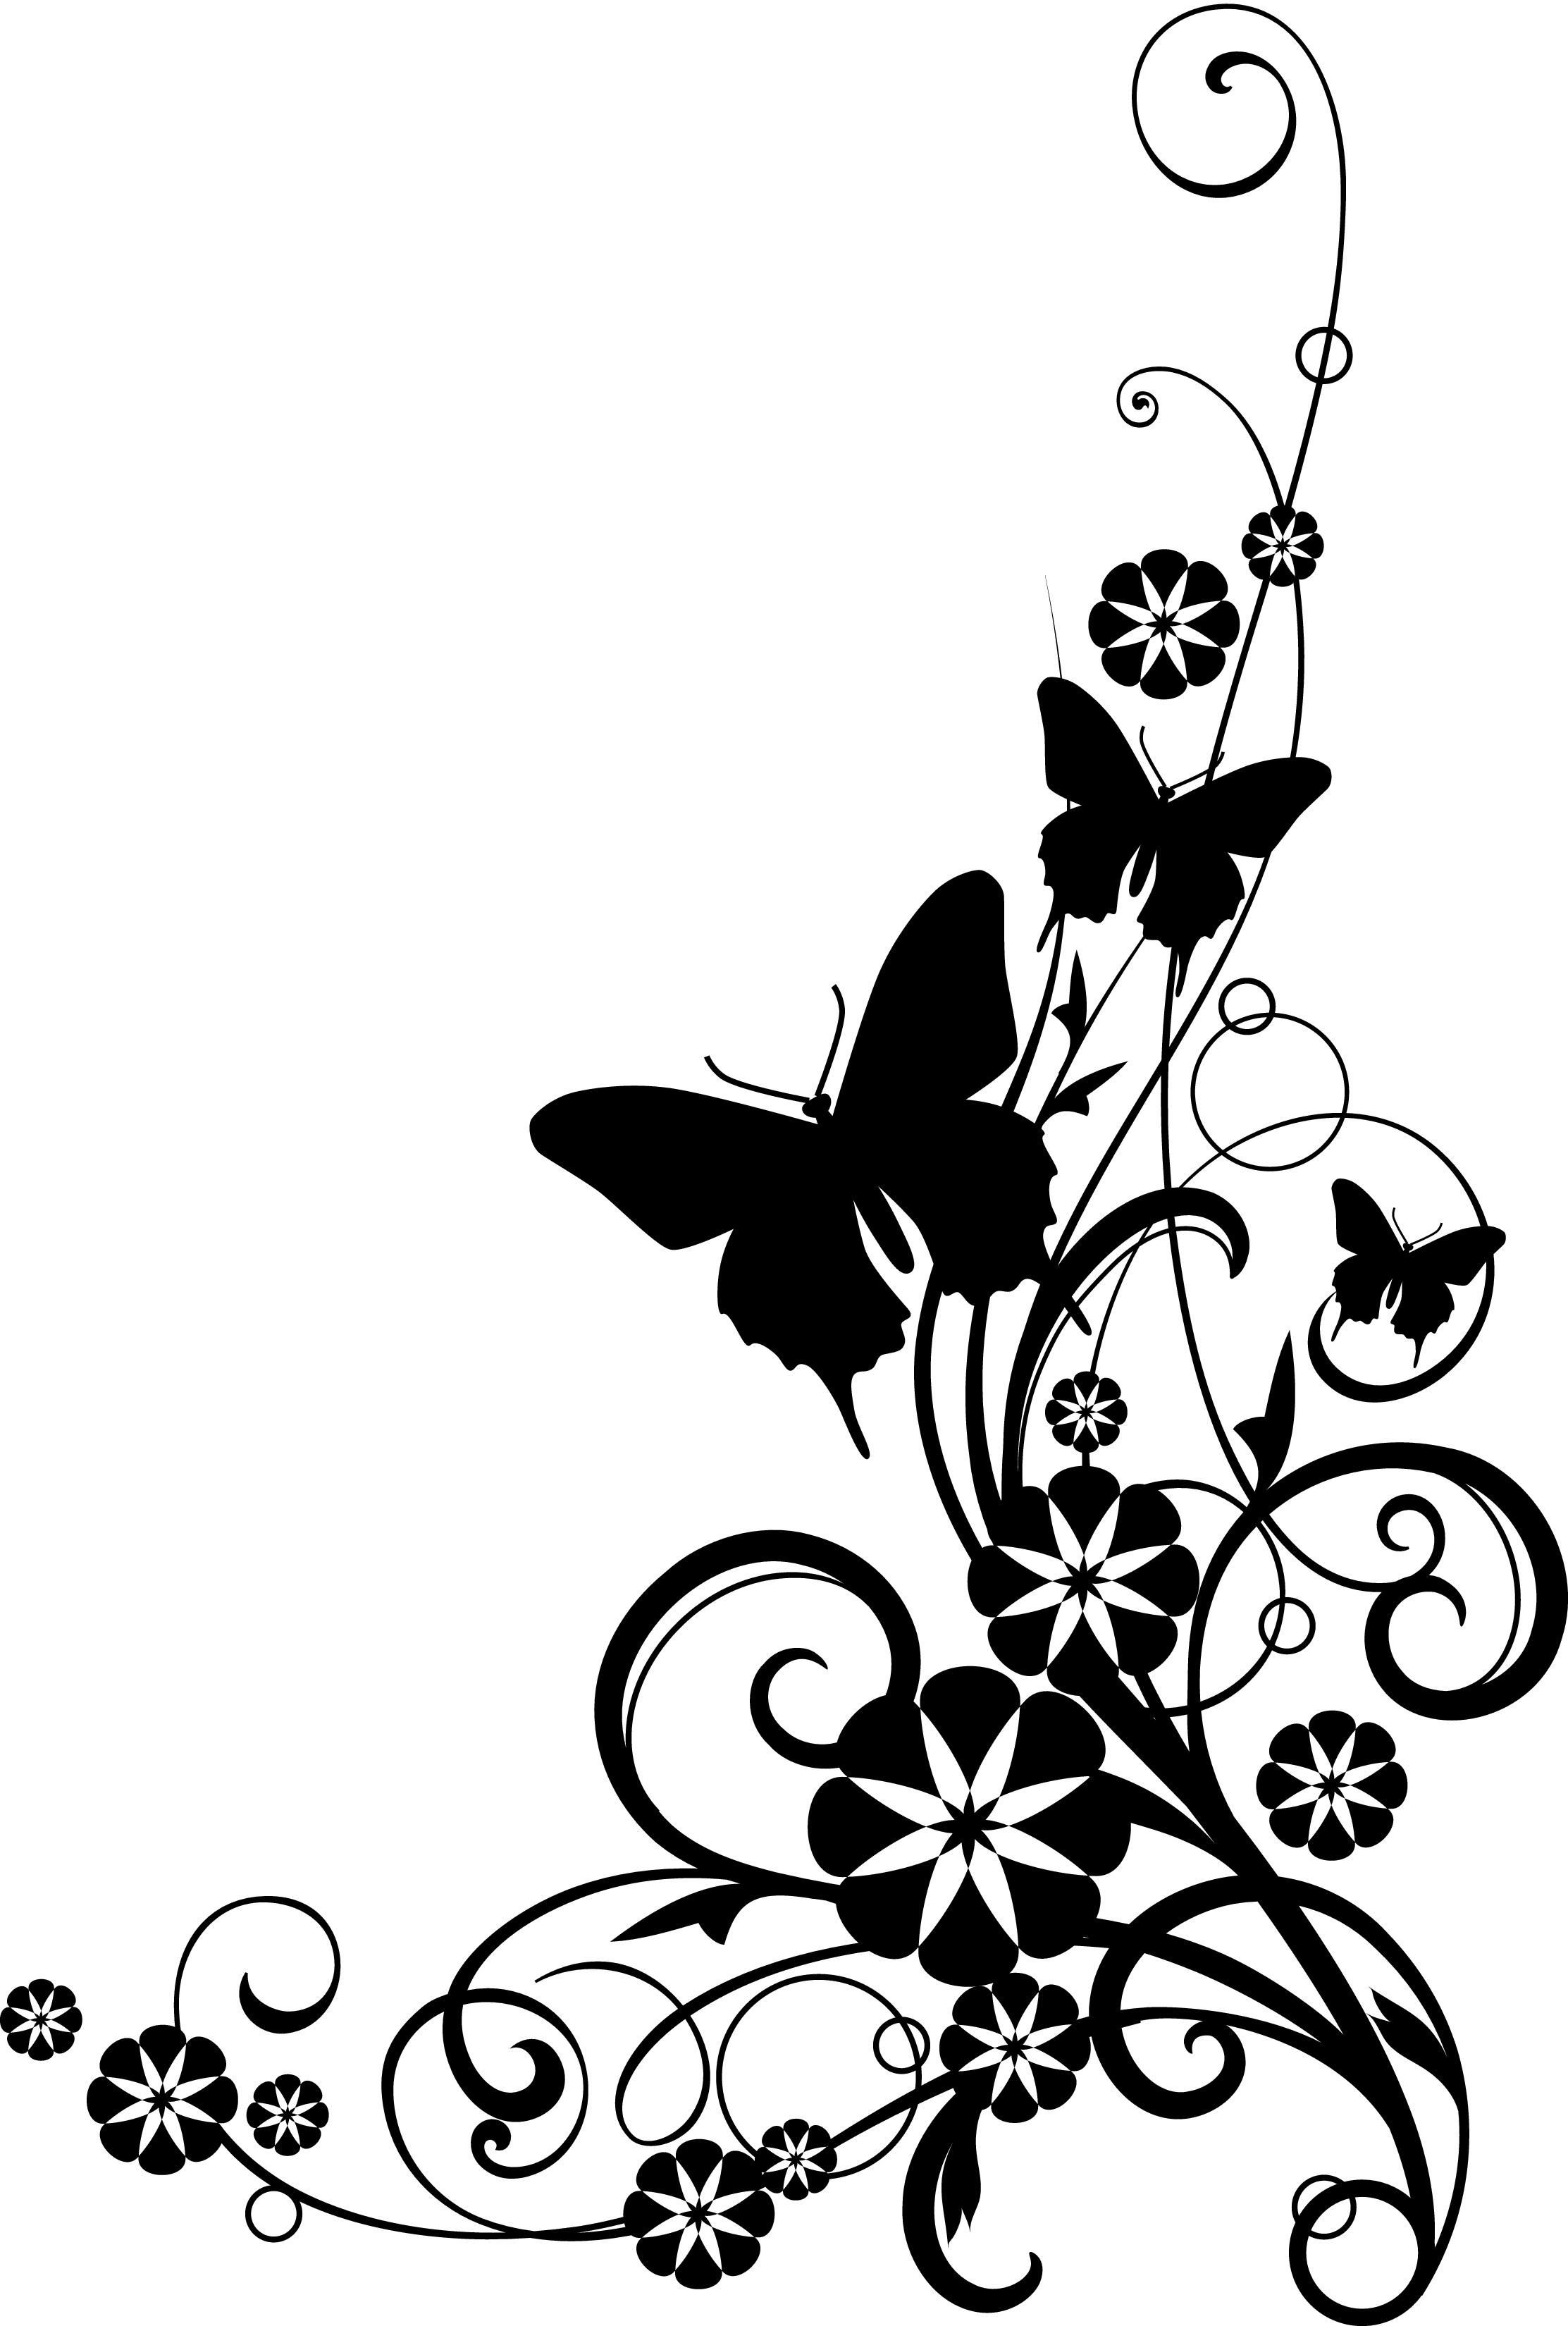 svg silhouette wildflower